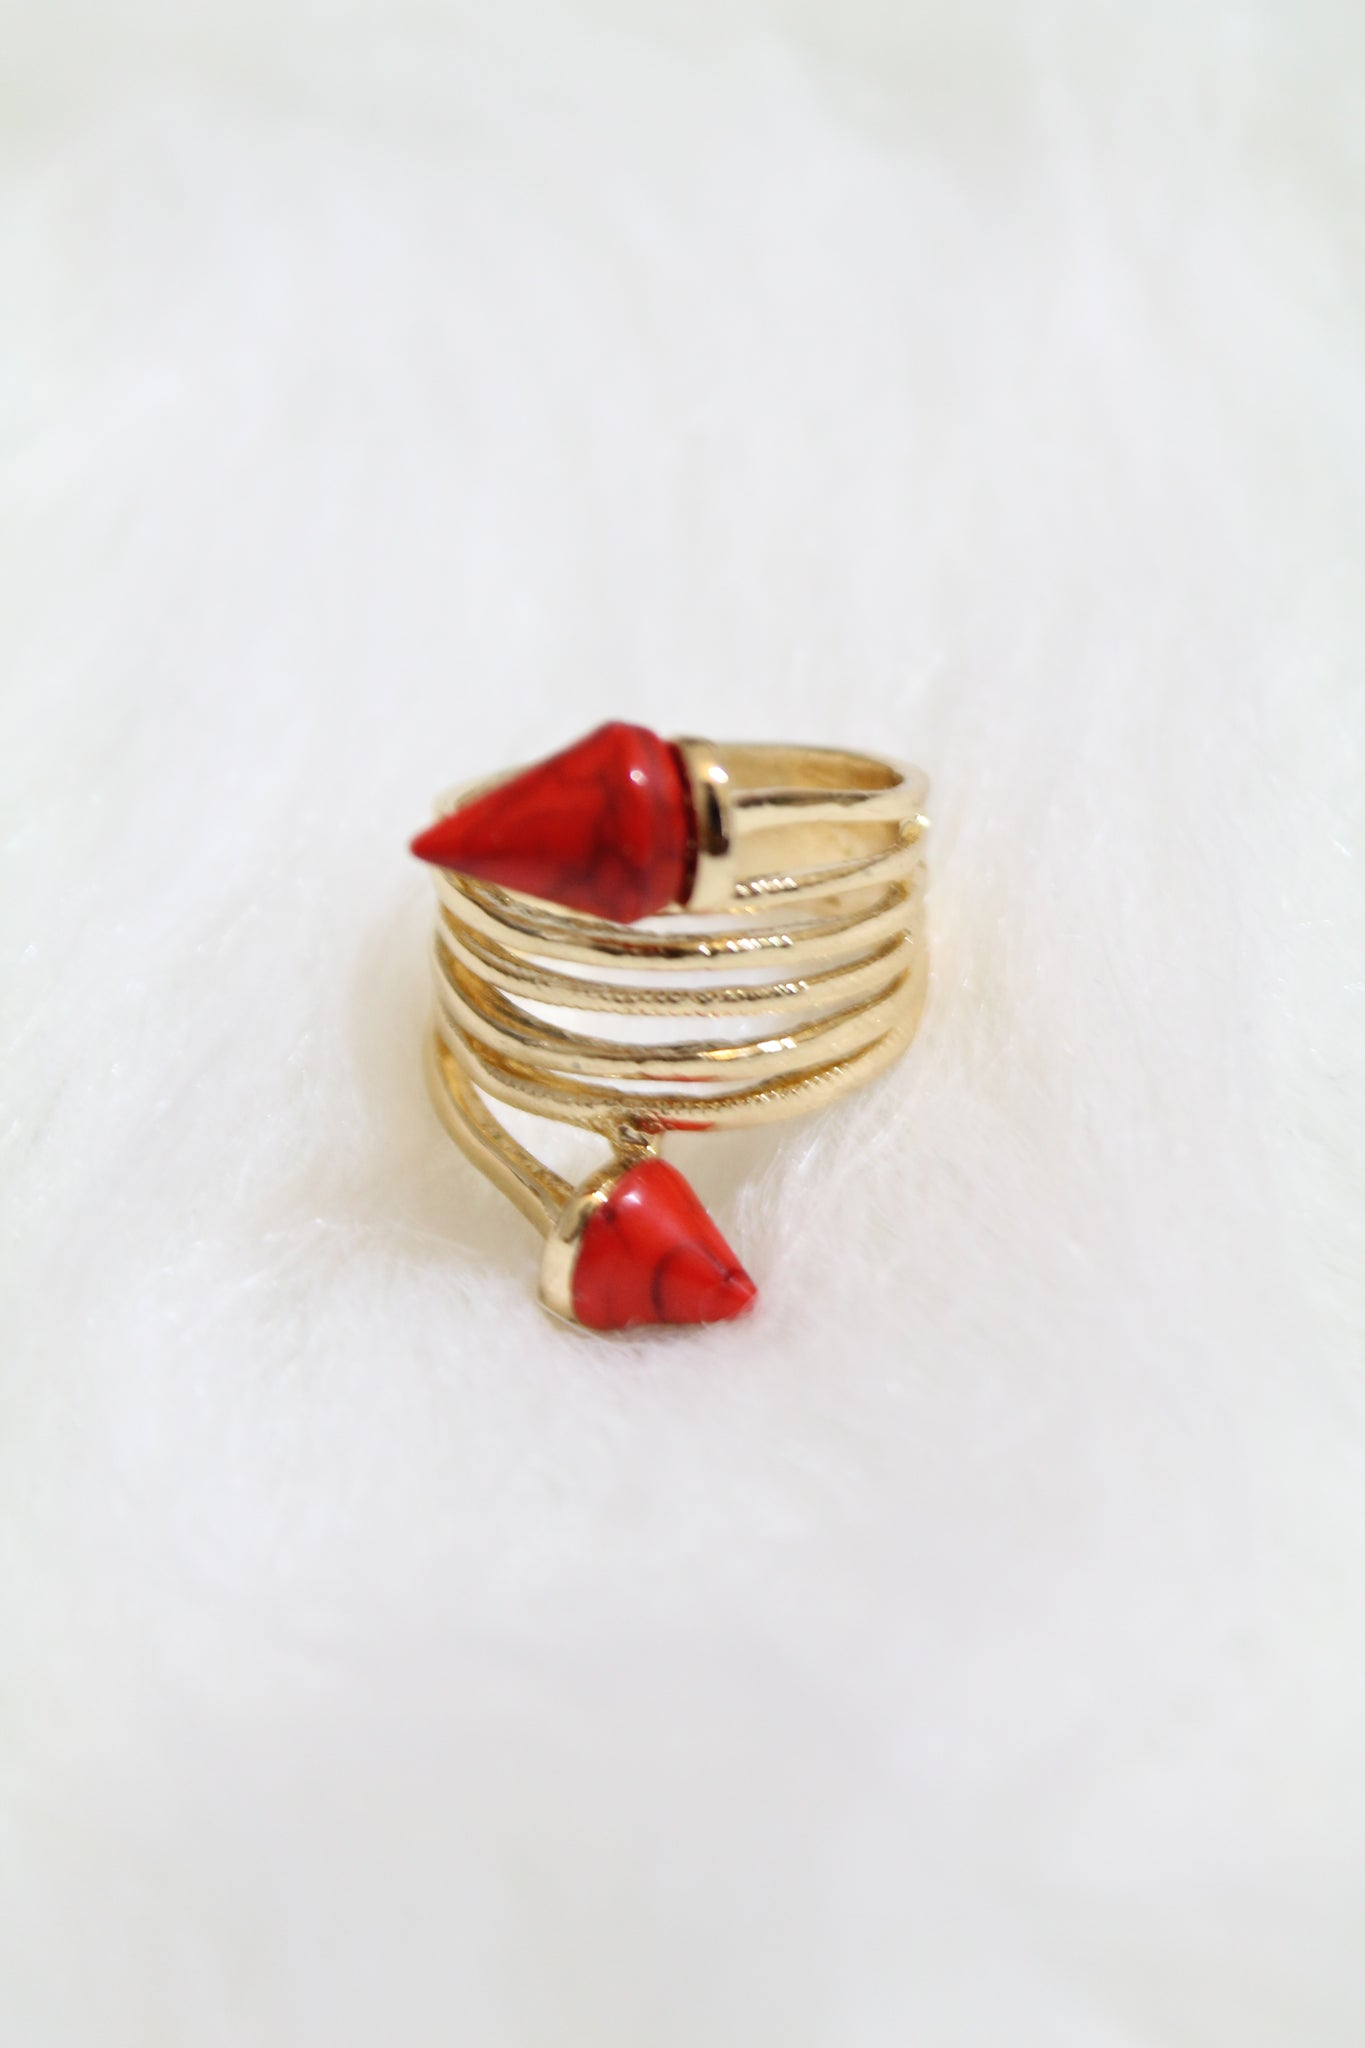 Stone Tip Coil Ring - Red